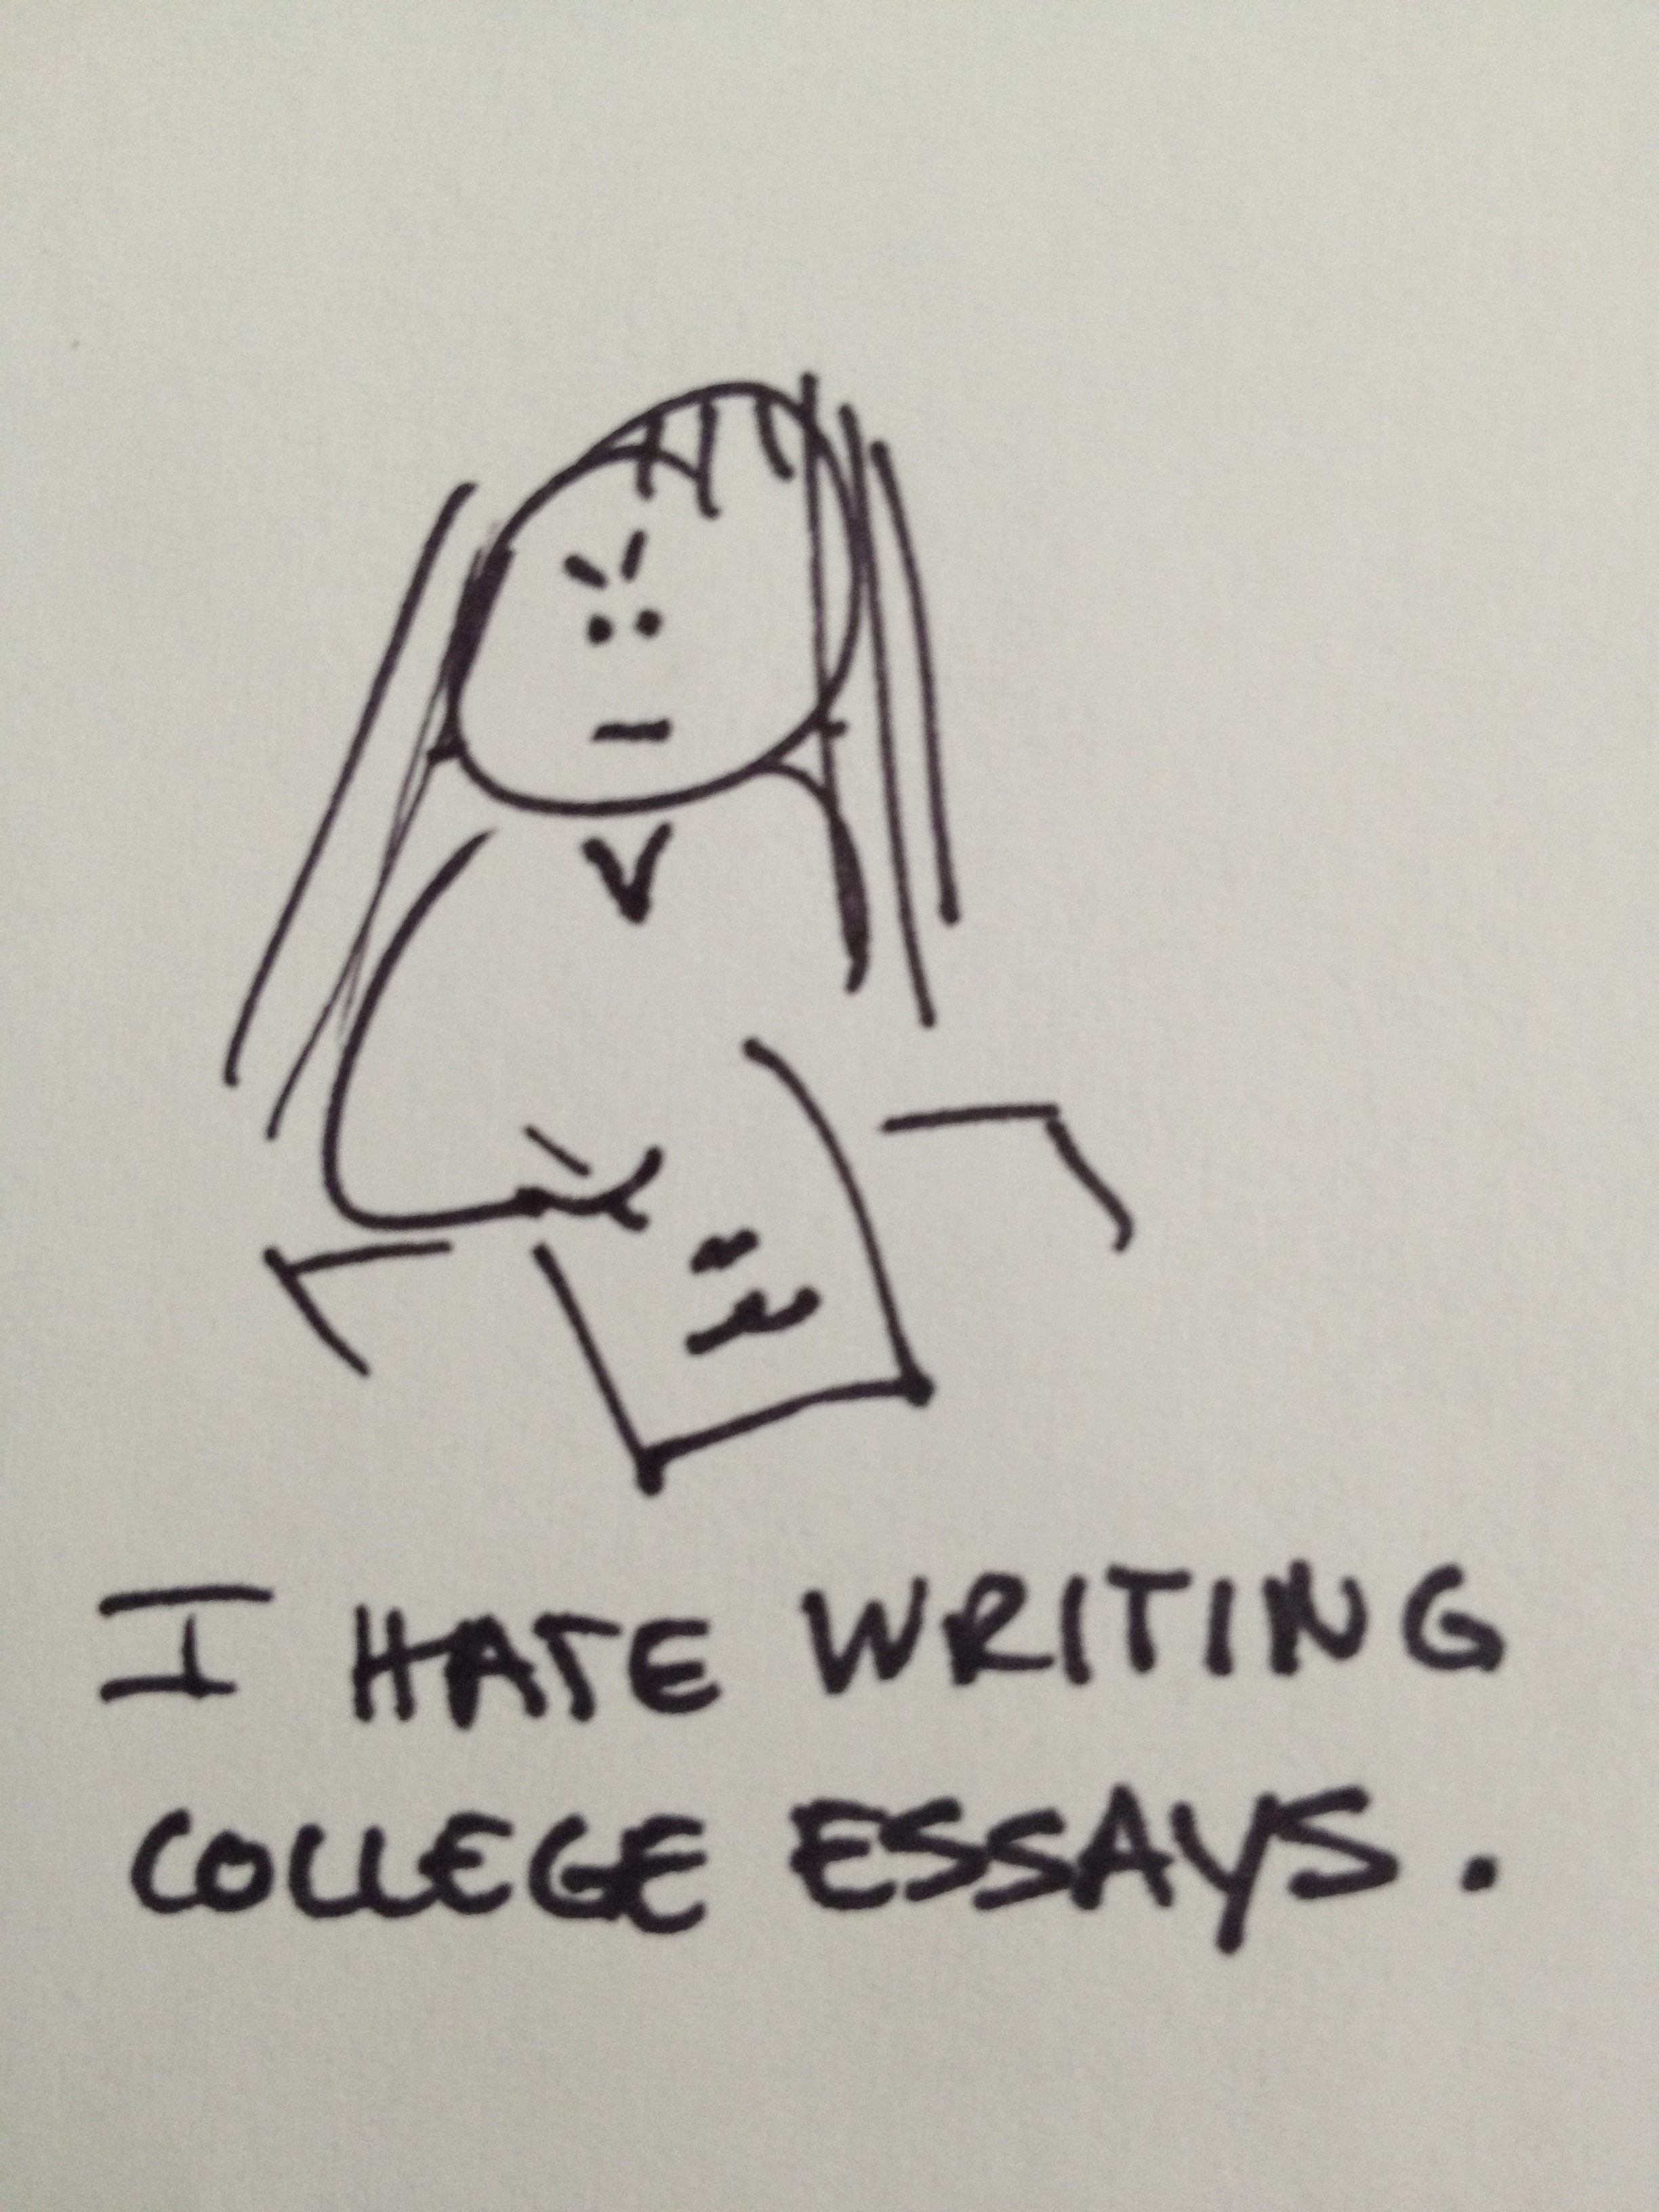 titanic essays titanic essays essays about the movie titanic the titanic essay on smoking cigarettes essay about my